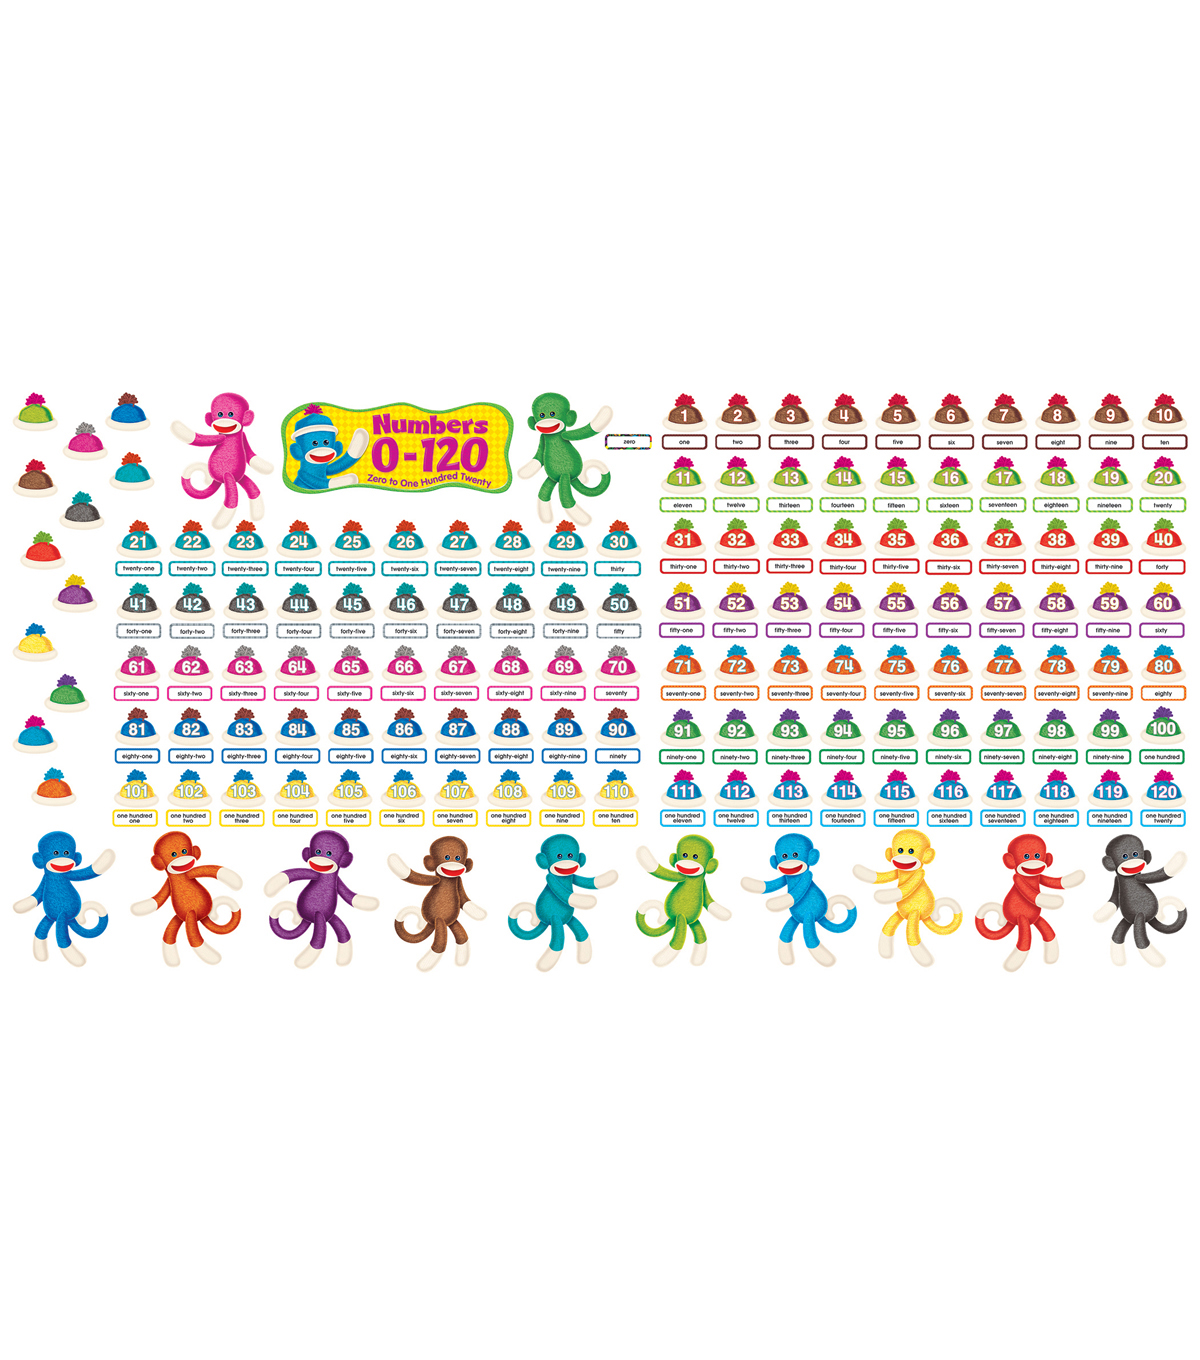 Sock Monkeys Numbers 0-120 Bulletin Board Set, 2 Sets